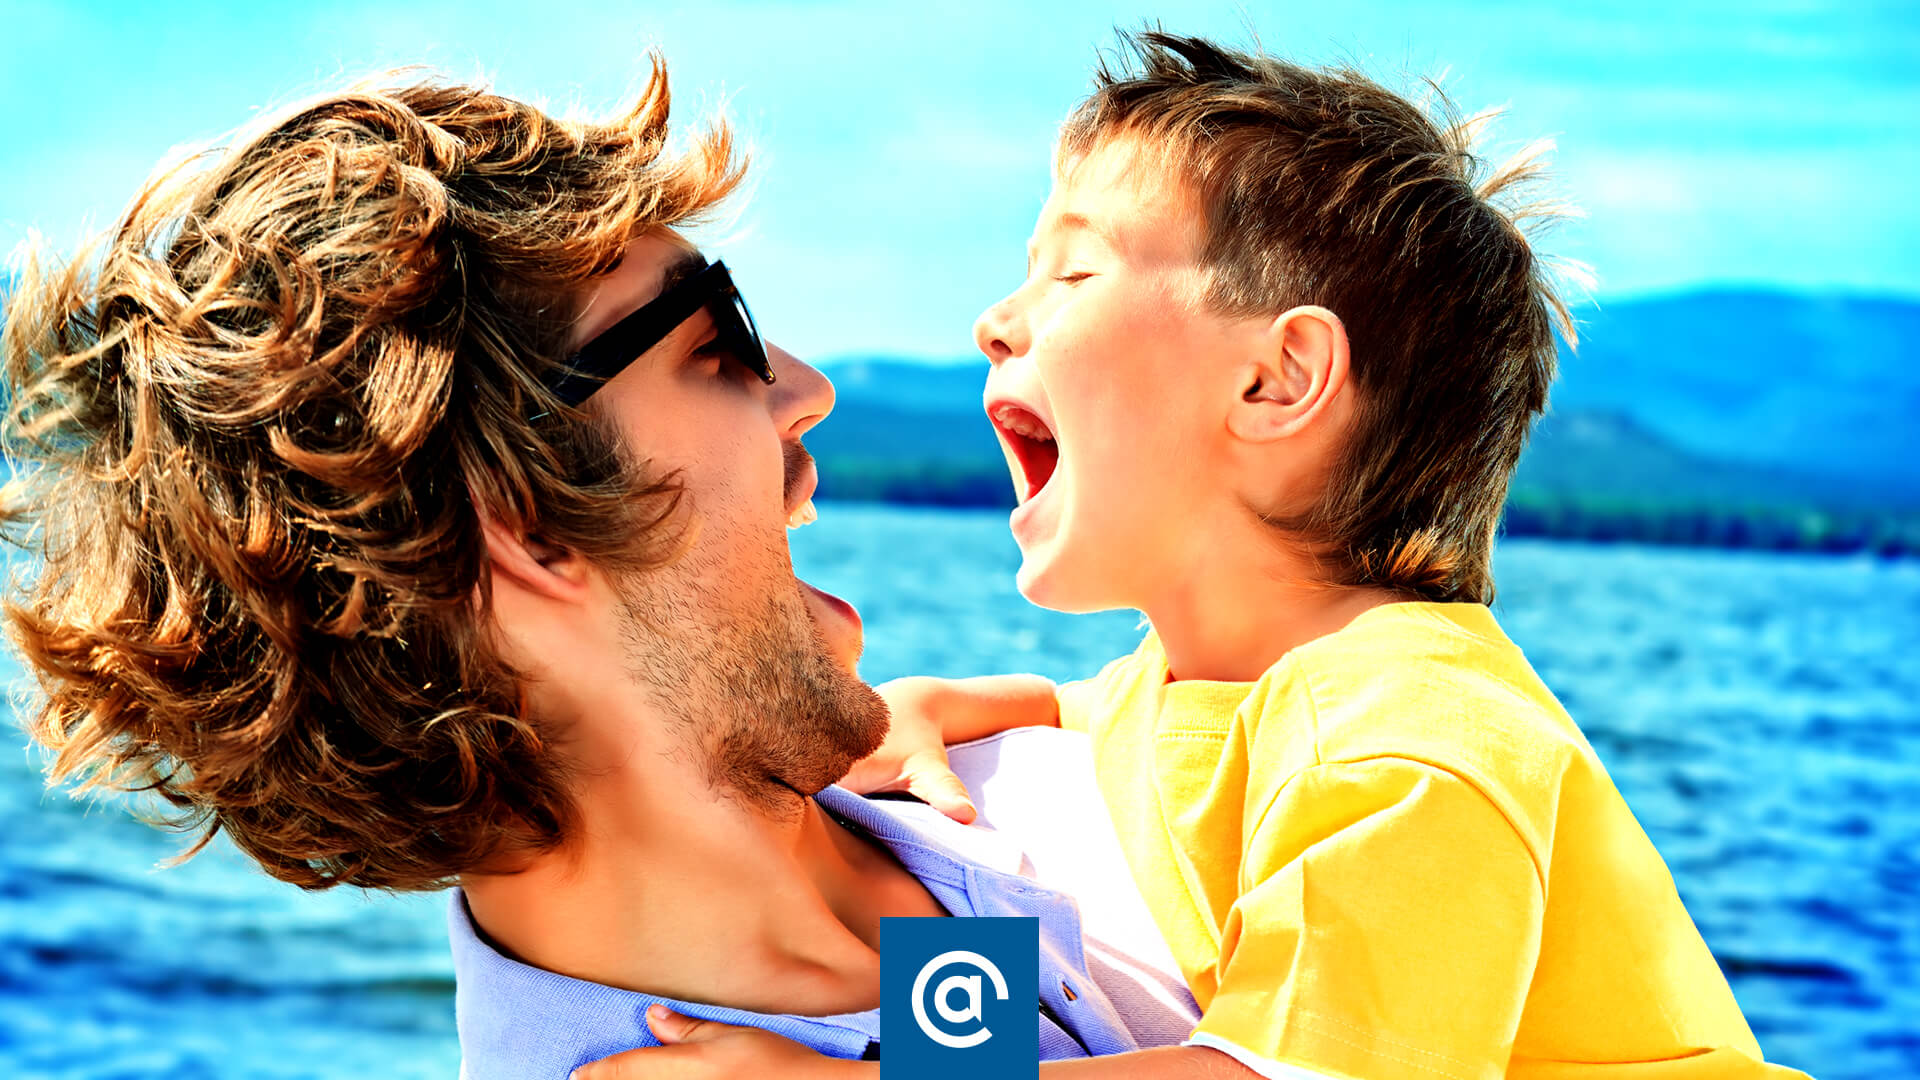 Digging into Dads on Facebook: Psychographic Targeting Hot House